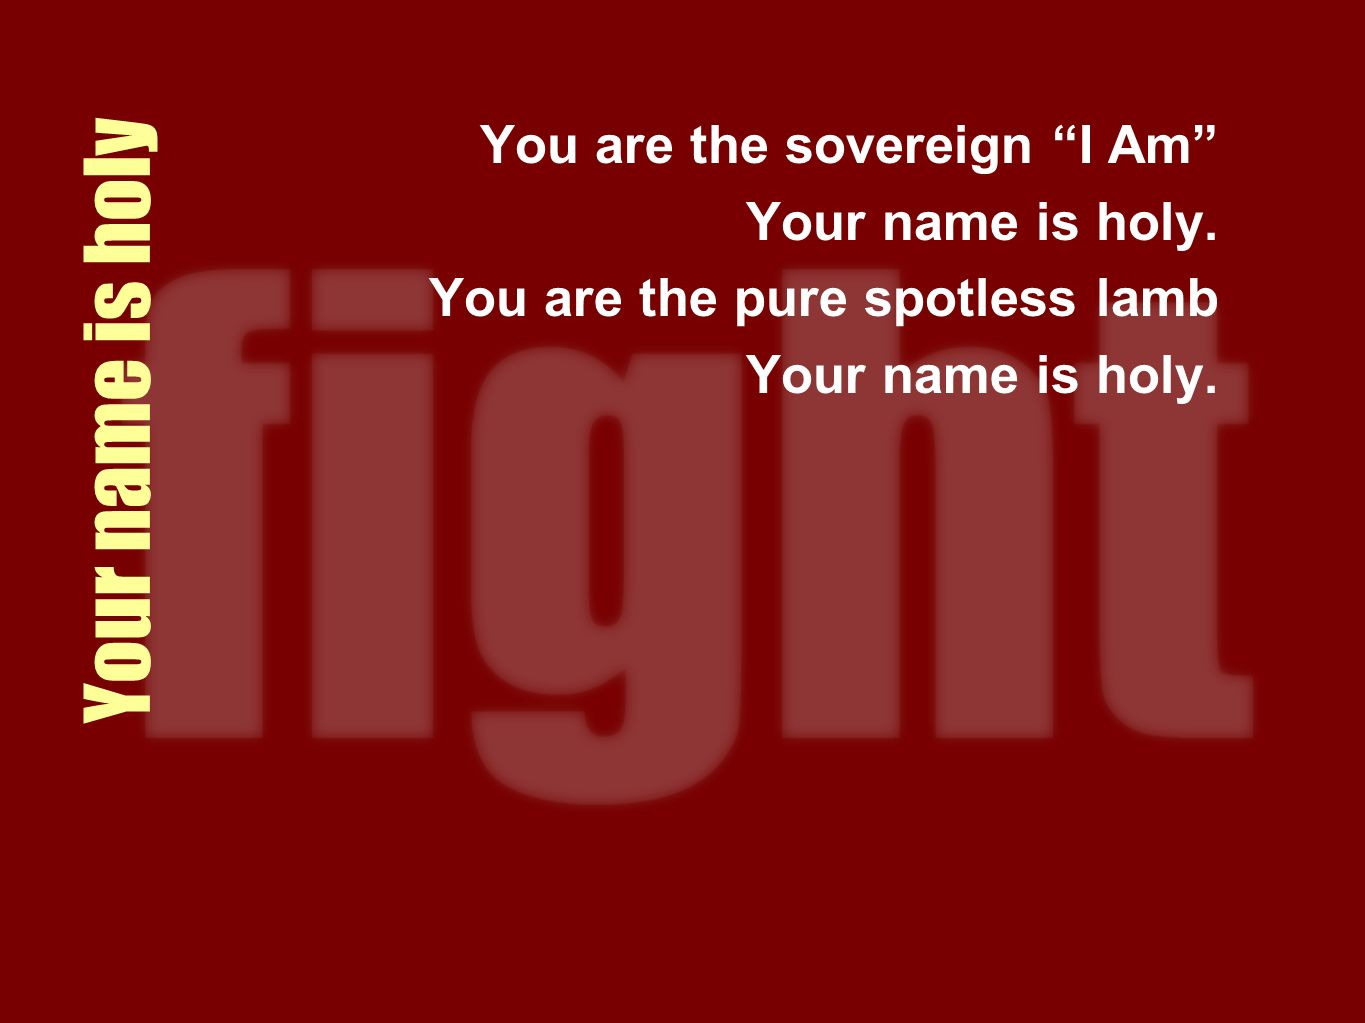 Your name is holy You are the sovereign I Am Your name is holy. You are the pure spotless lamb Your name is holy.